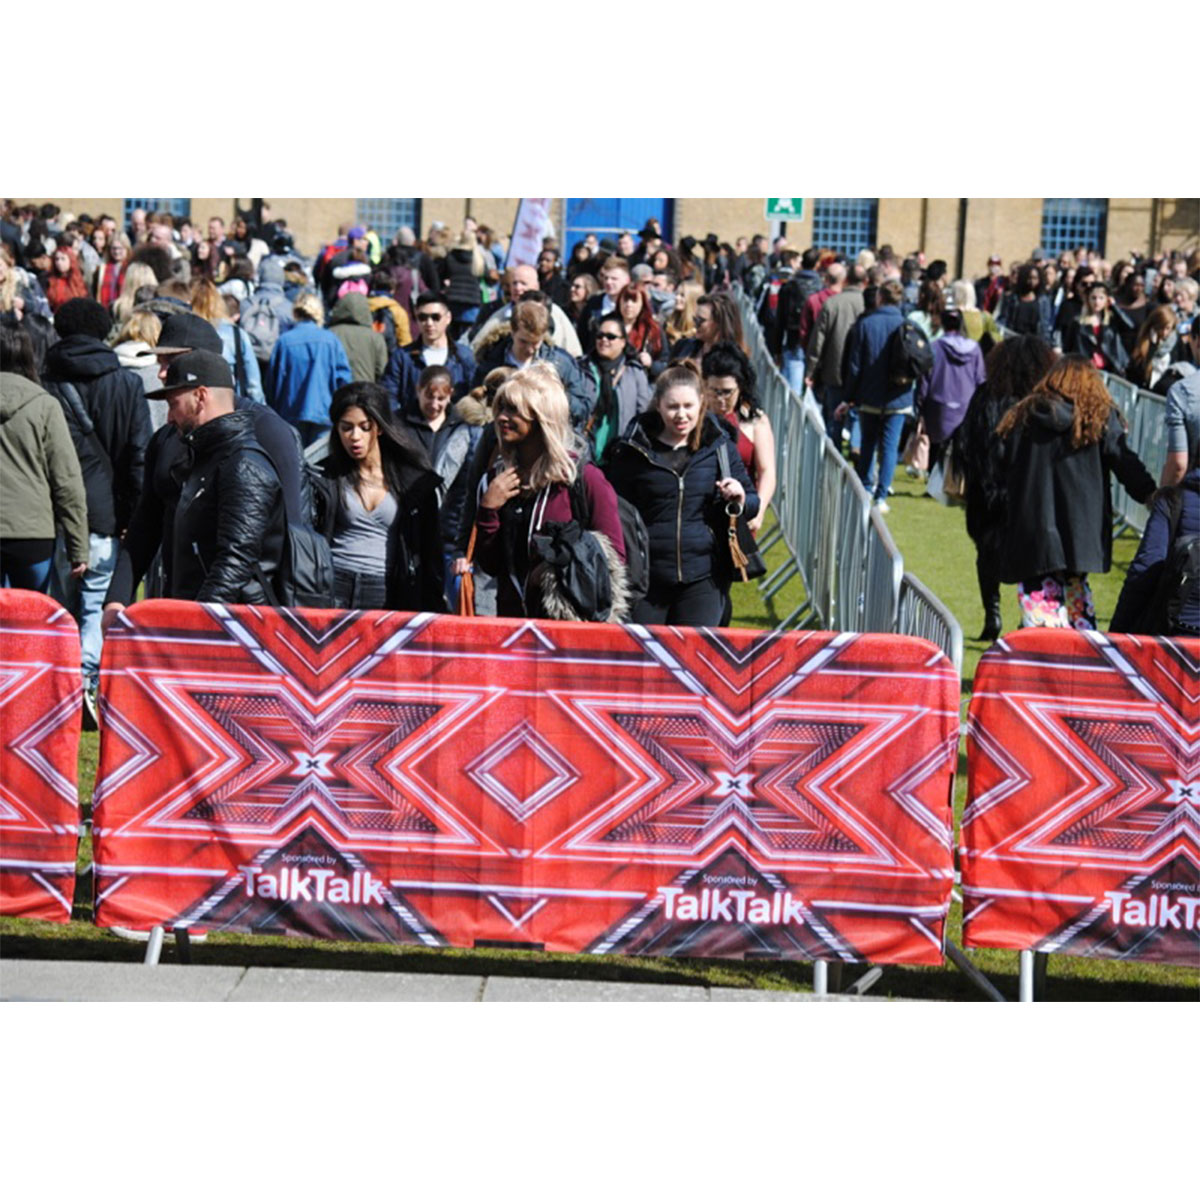 Crowd Barrier Covers | Outdoor Barrier Covers for Shops